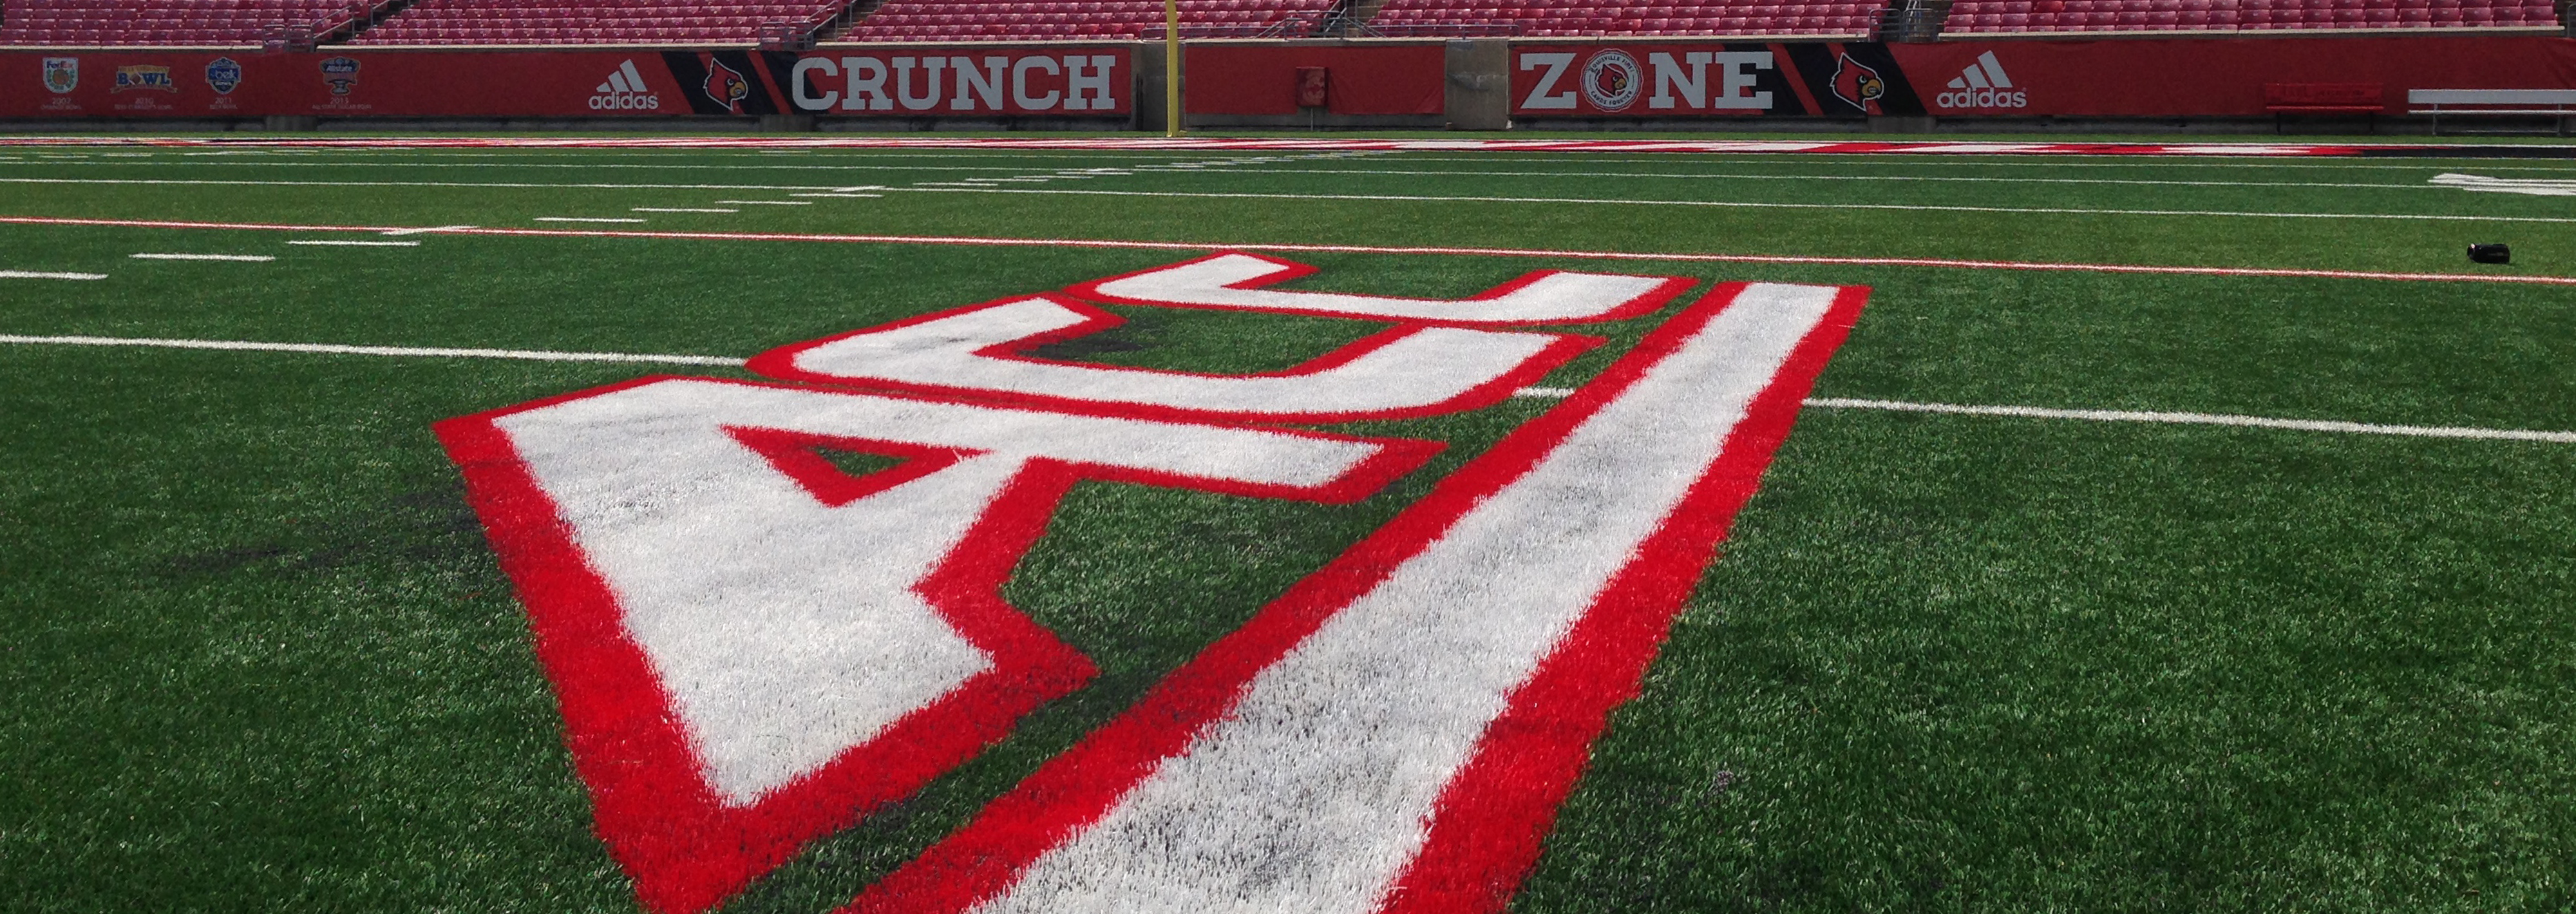 ACC Logo on Field at Papa John's Cardinal Stadium Summer 2014 Photo by Mark Blankenbaker Fitted